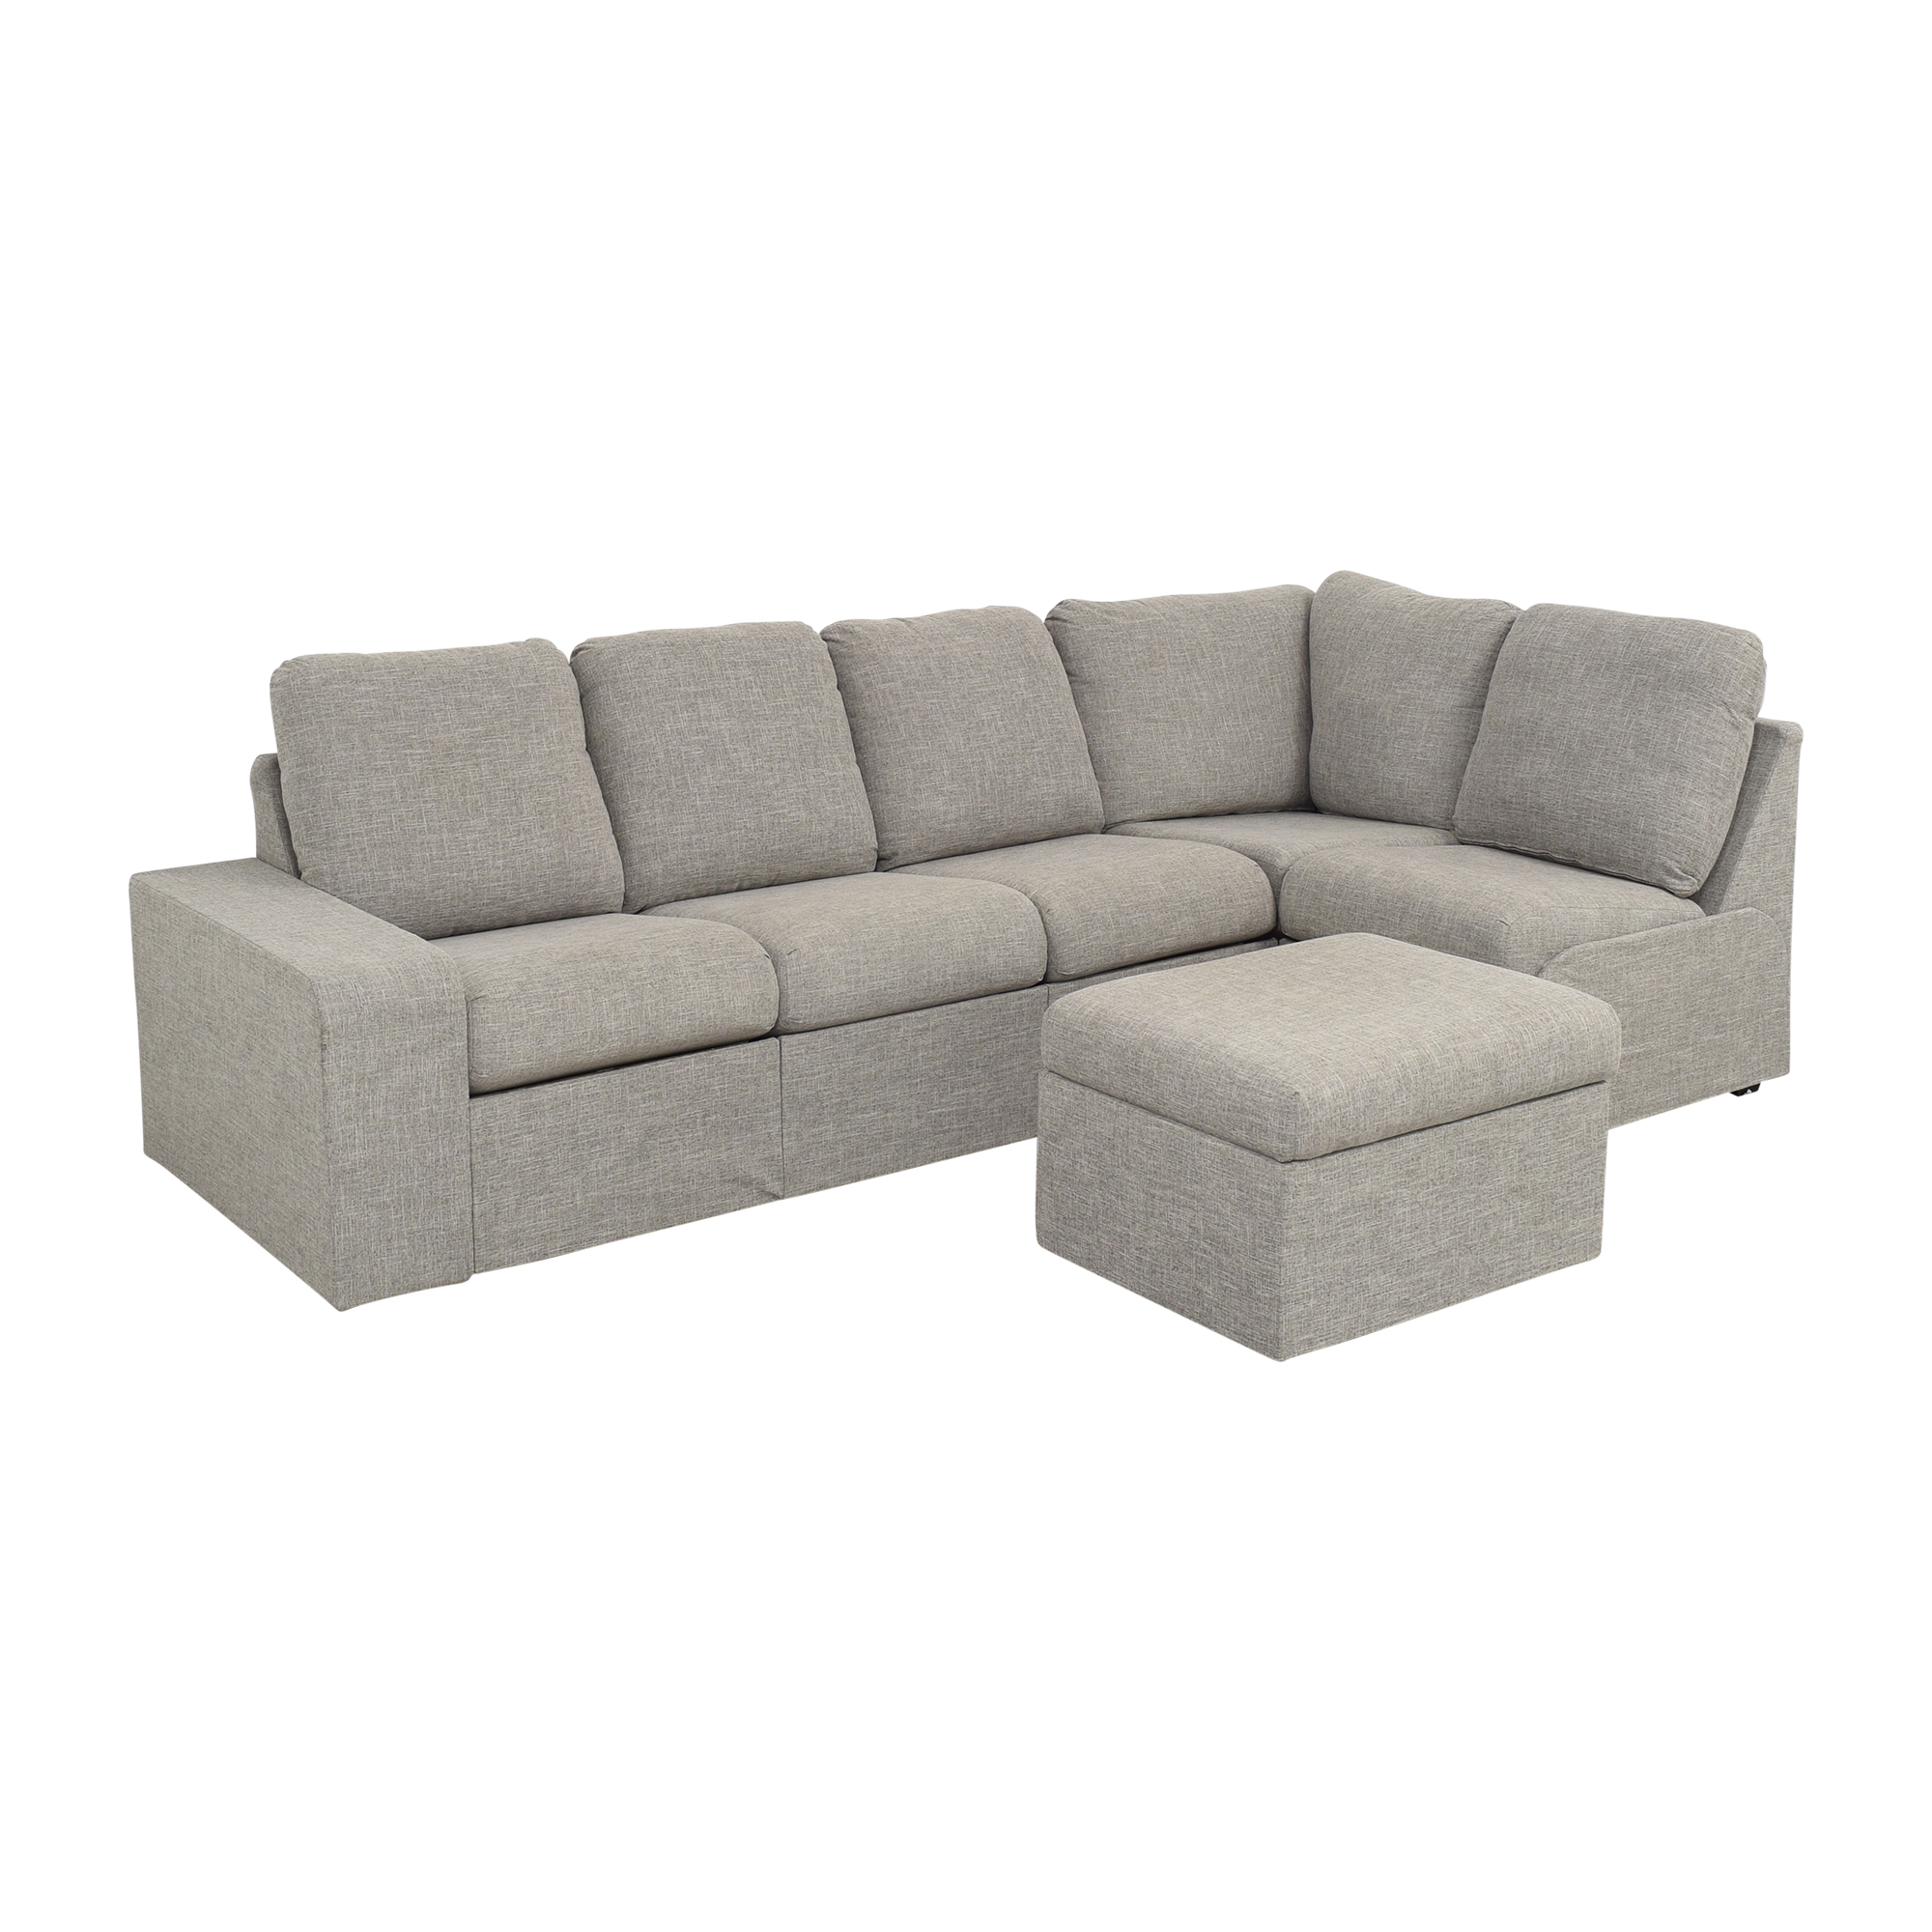 Home Reserve Jovie Sectional with Ottoman / Sofas